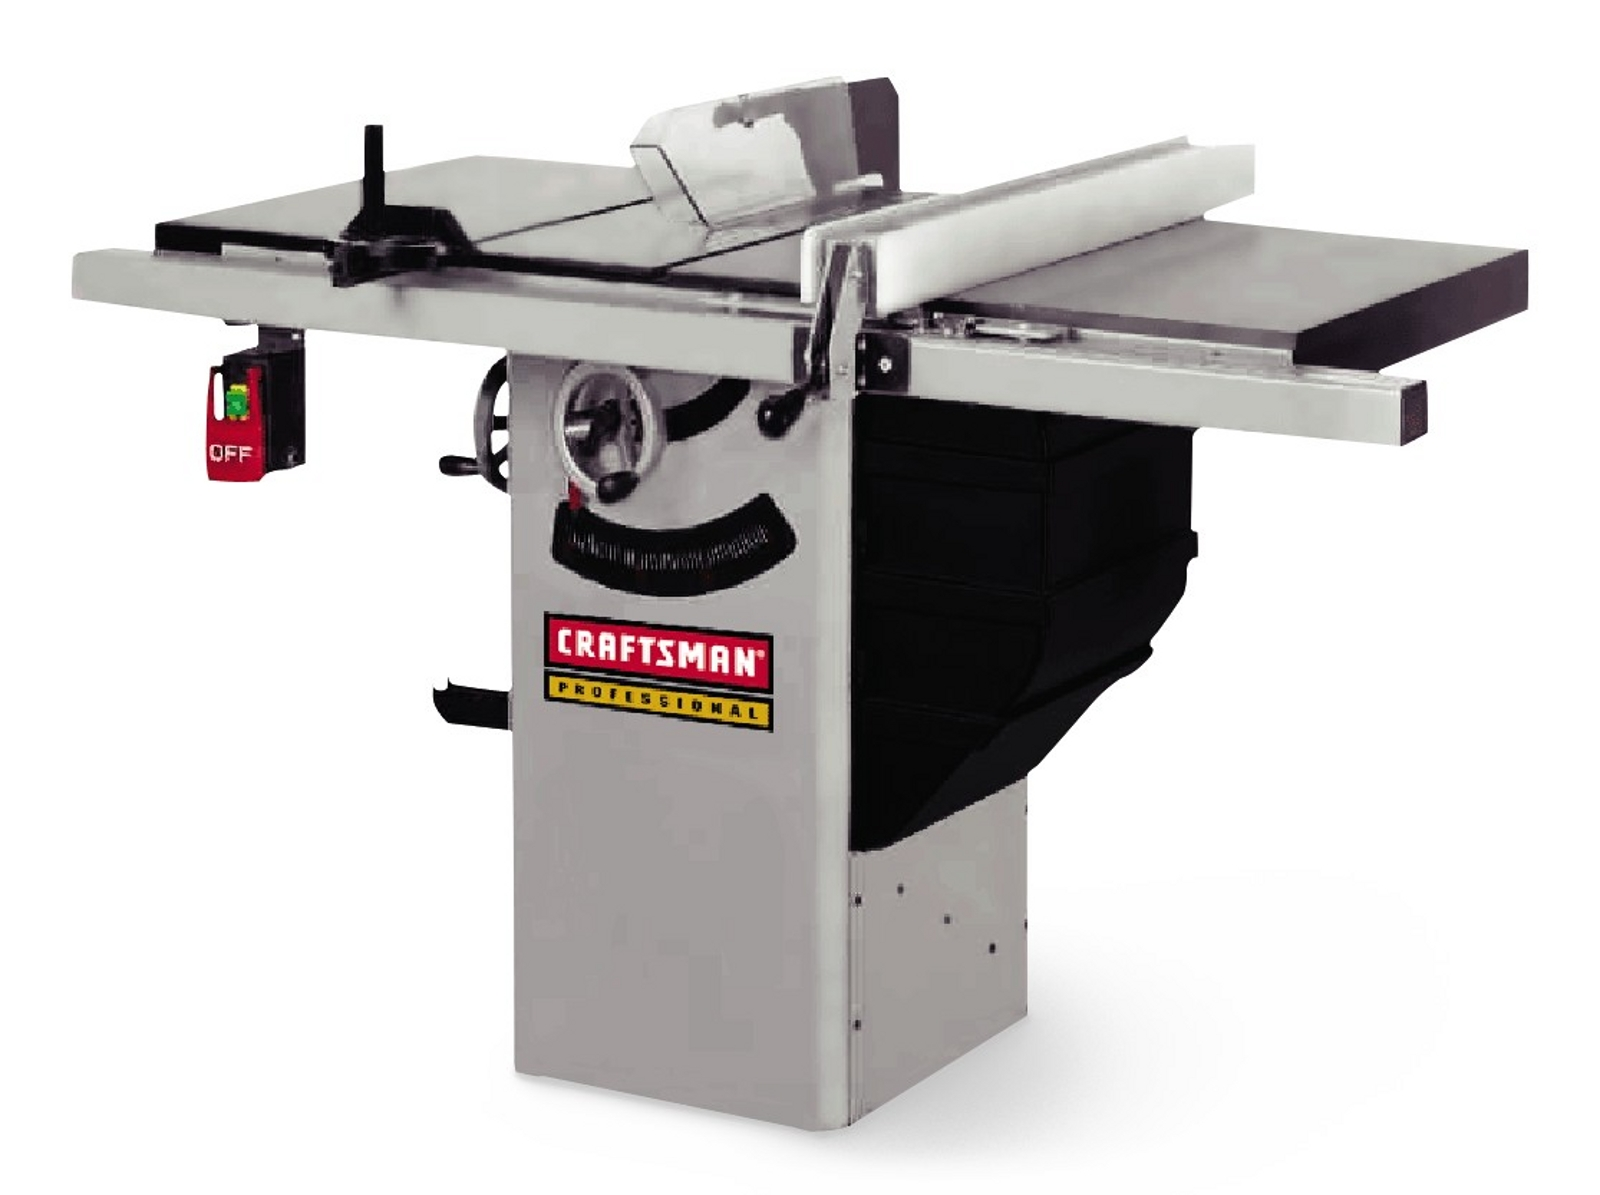 "Craftsman Professional 1-3/4 HP Premium Hybrid 10"" Table Saw (22116)"